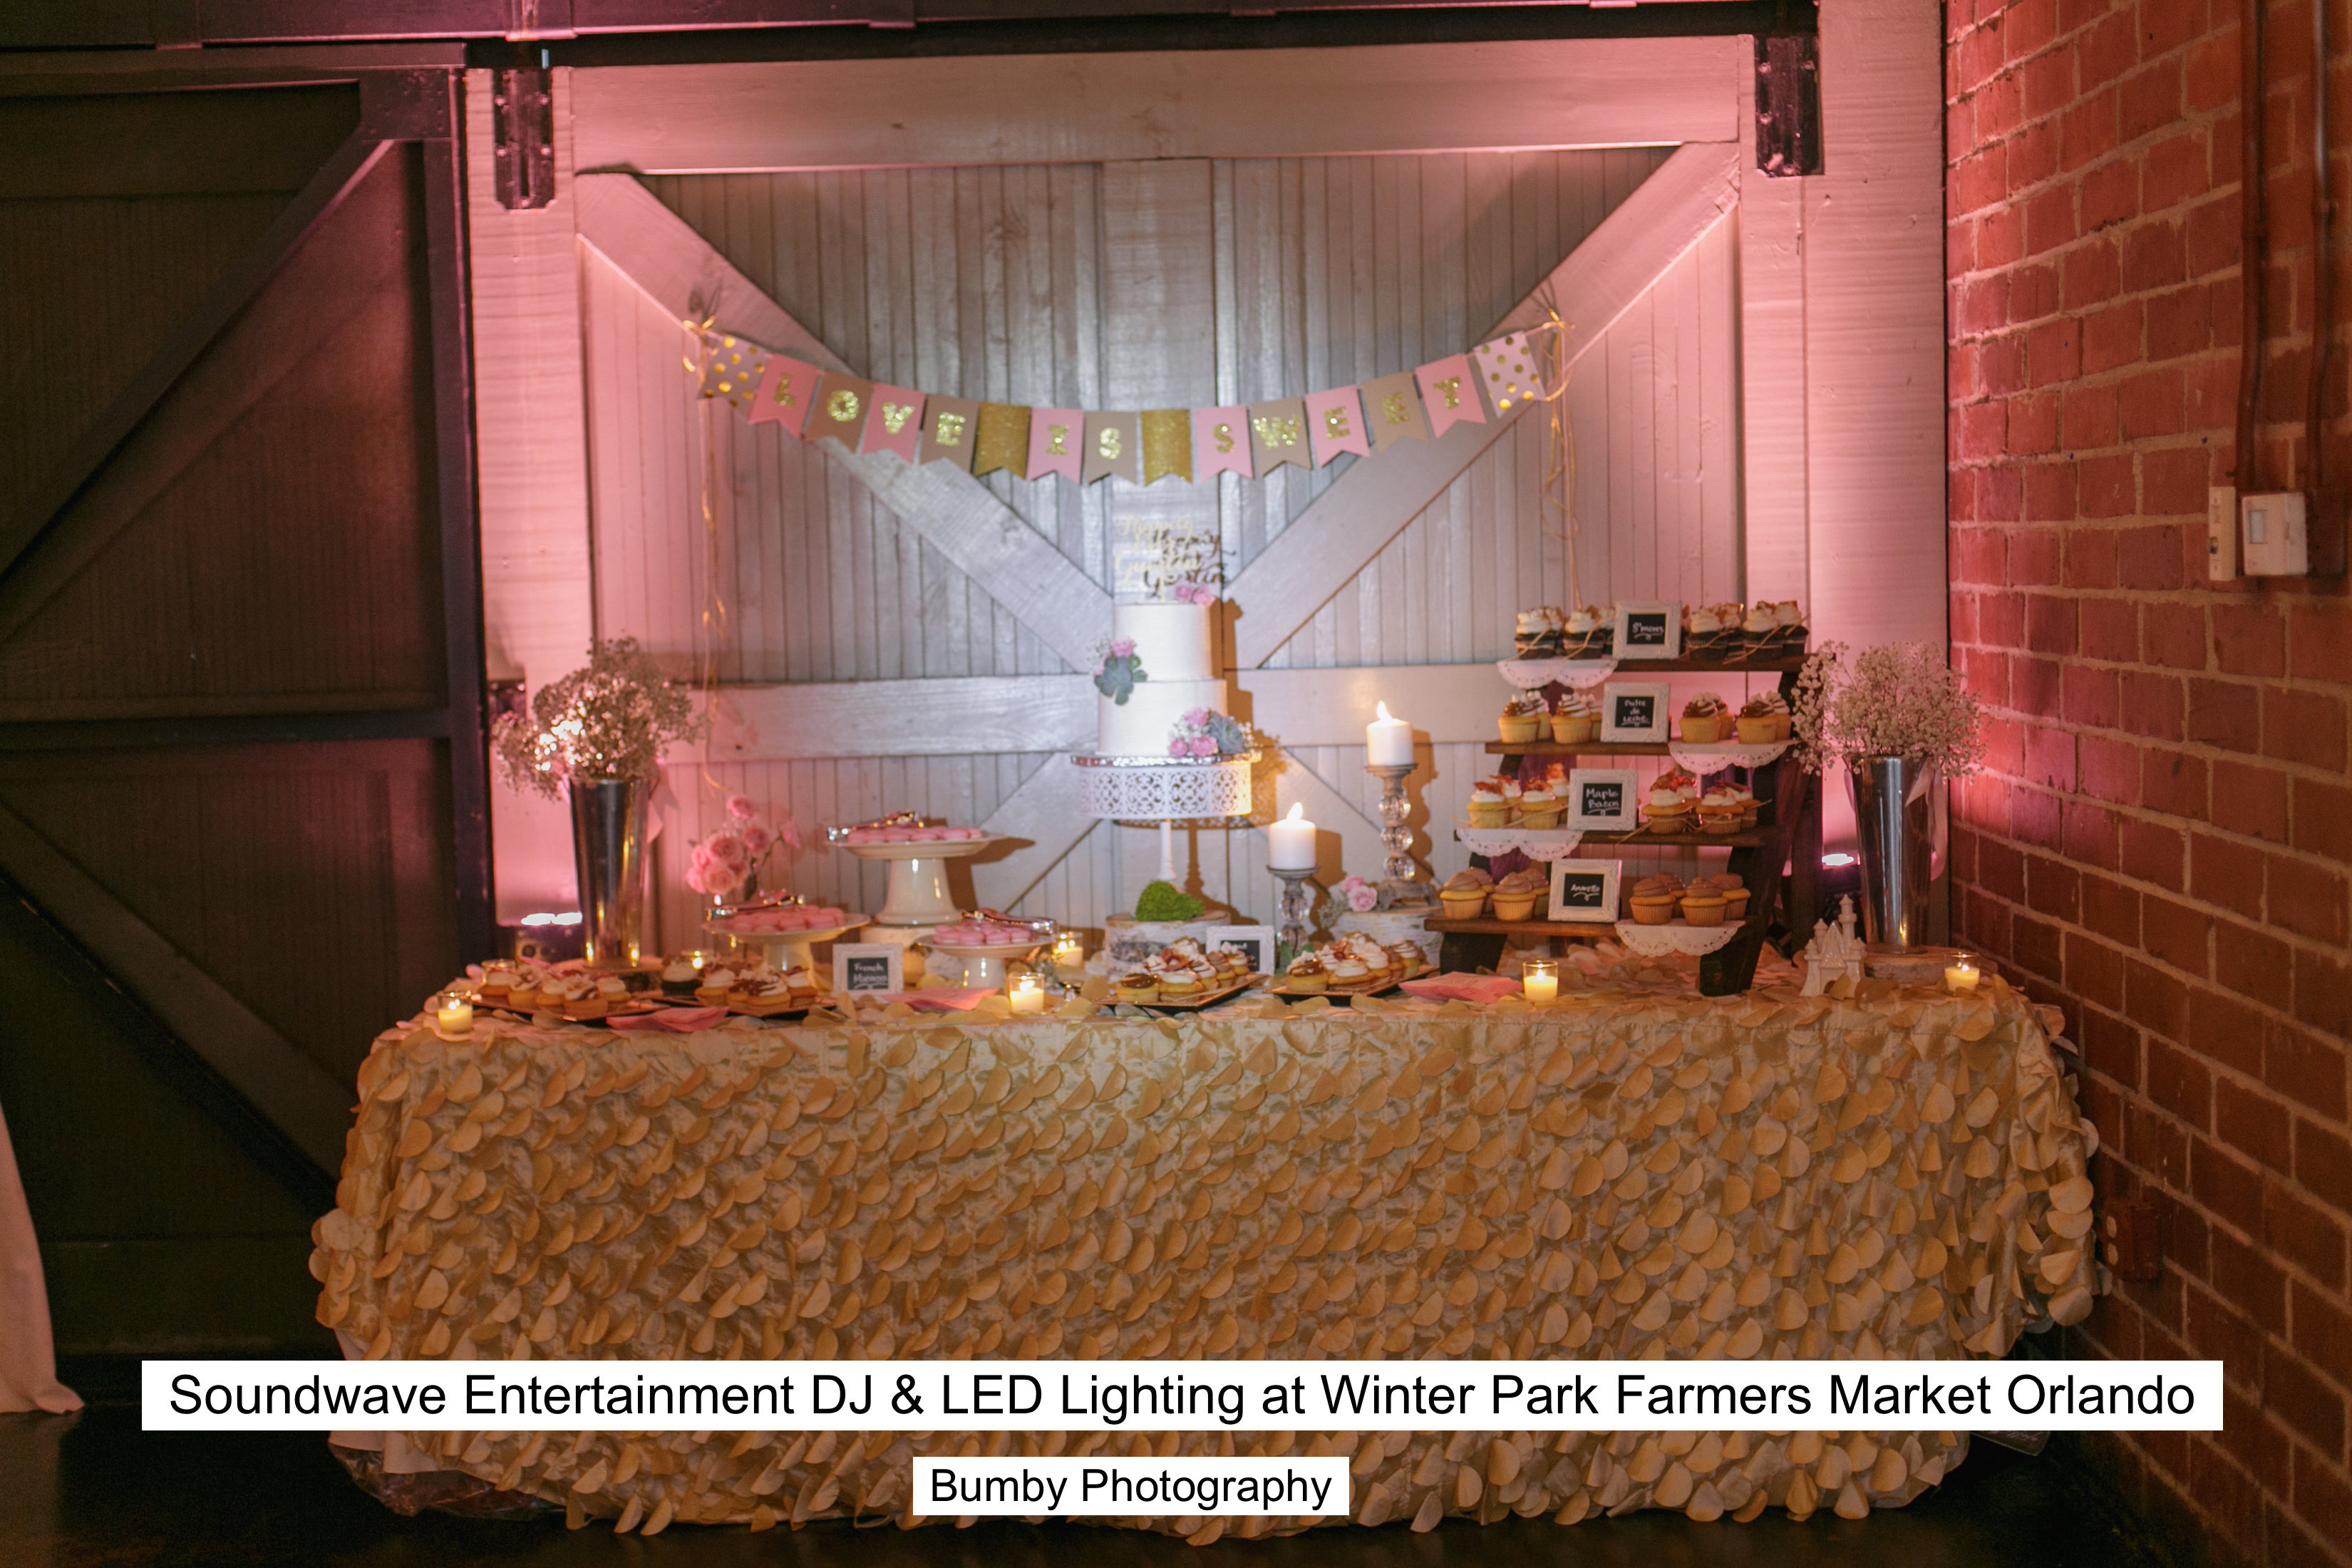 Soundwave Entertainment - Winter Park Farmers Market - Orlando Wedding DJs - LED Lighting Design - Orlando Wedding Venues